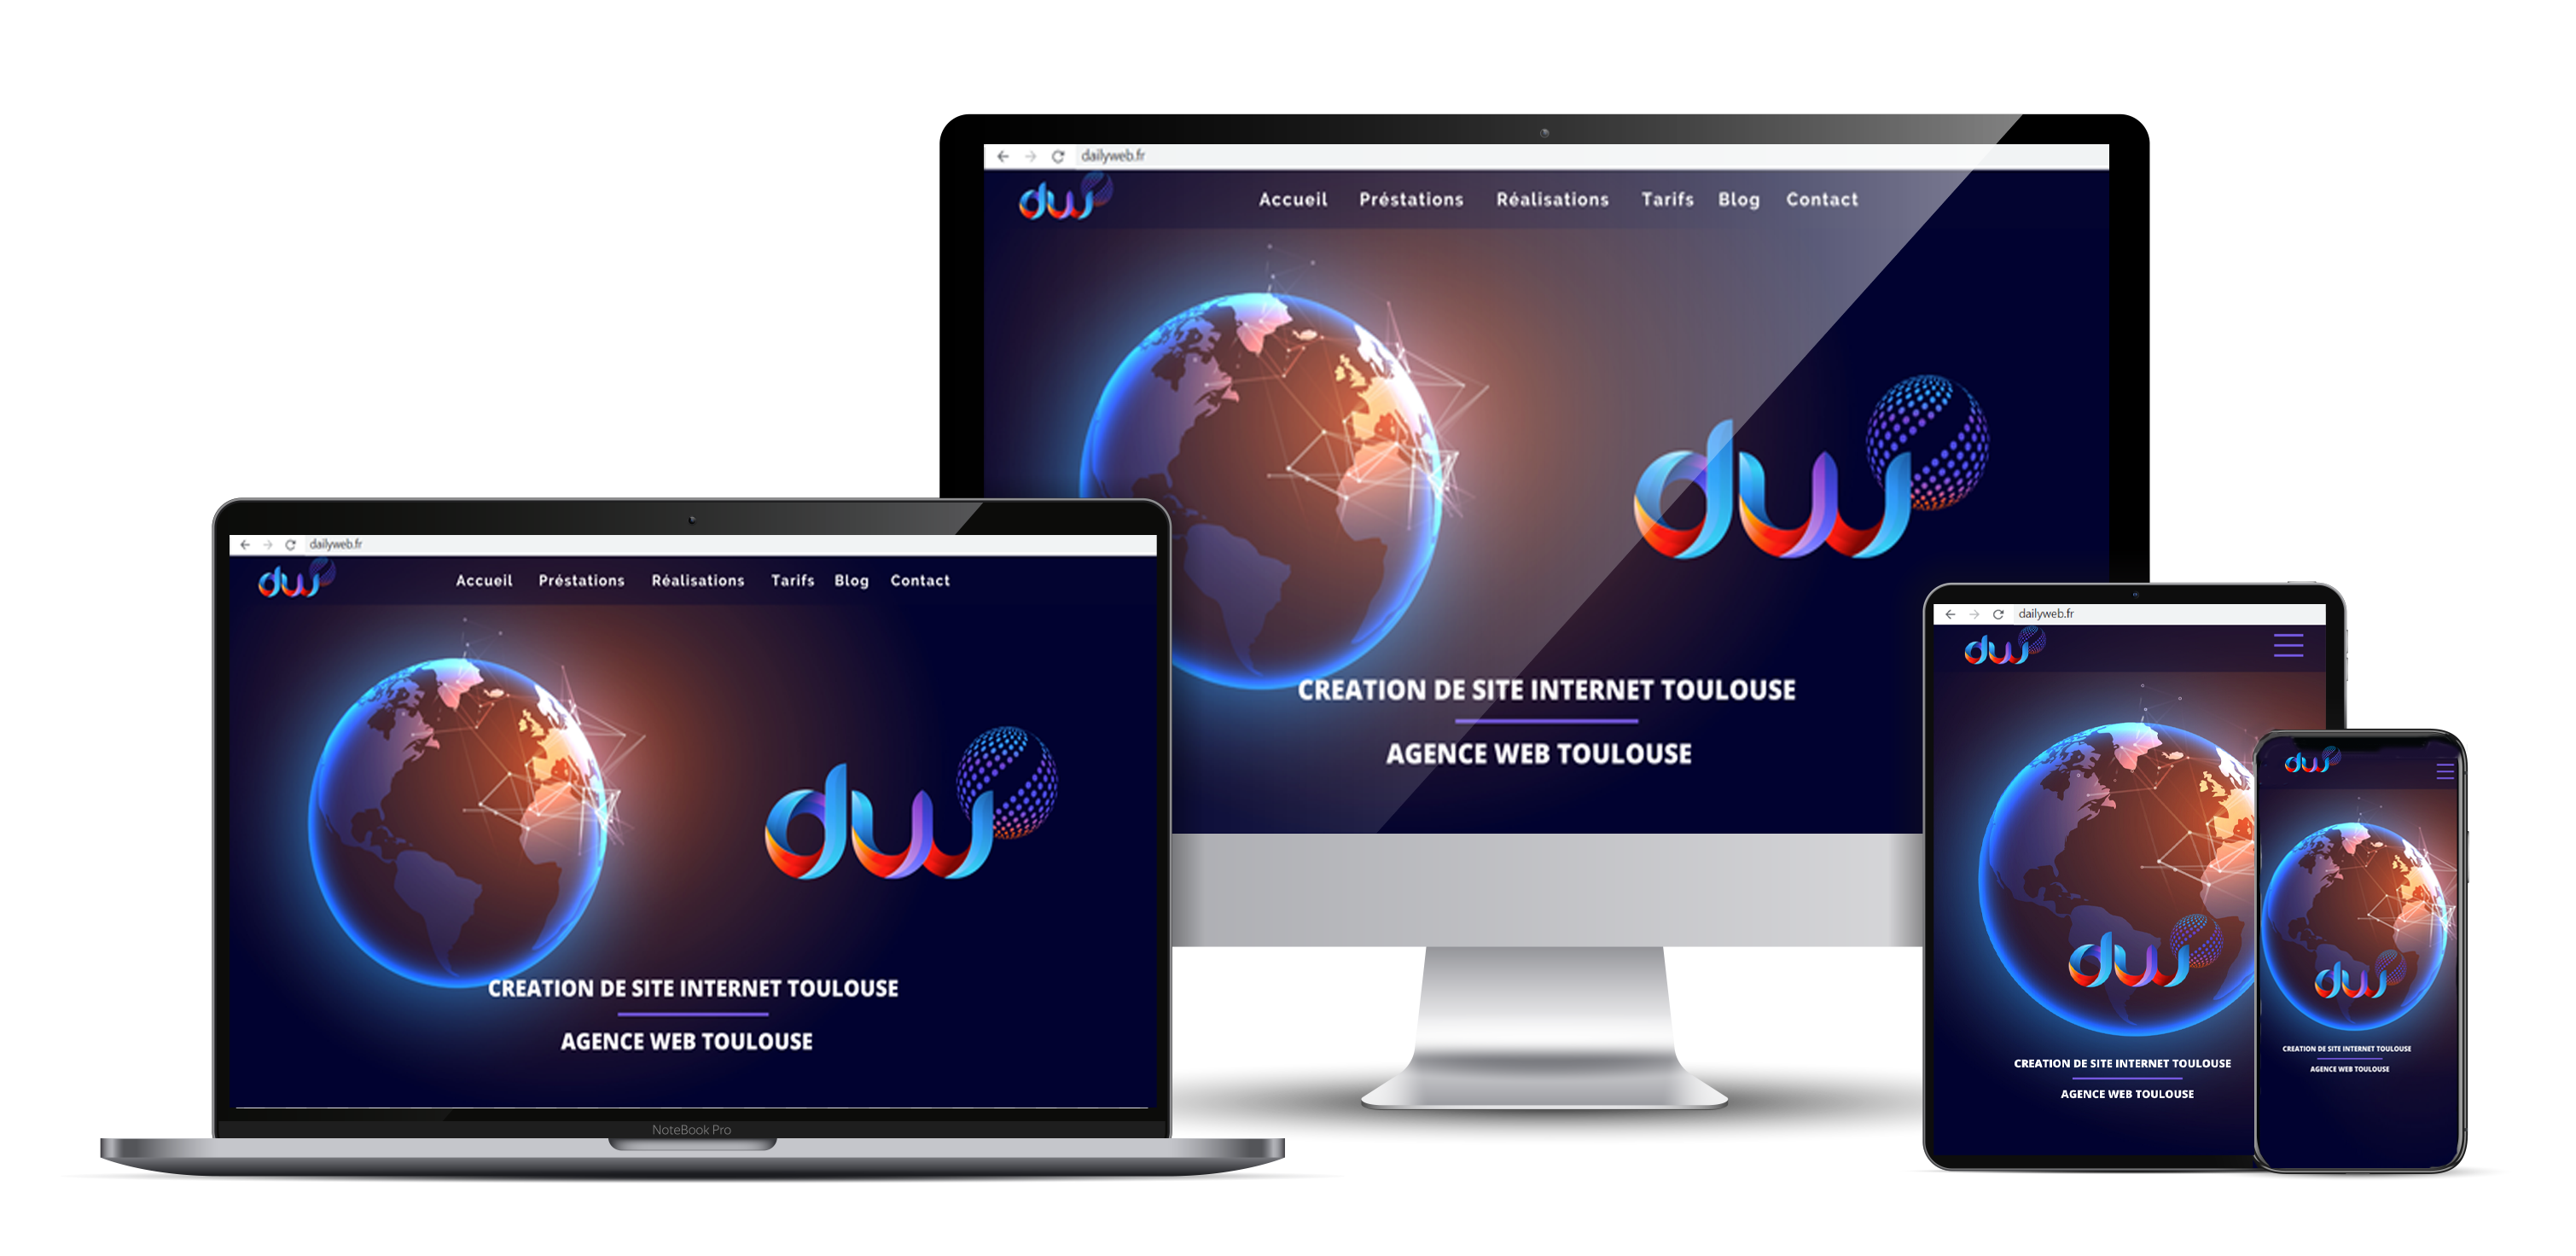 Agence creation de site internet Toulouse - Dailyweb